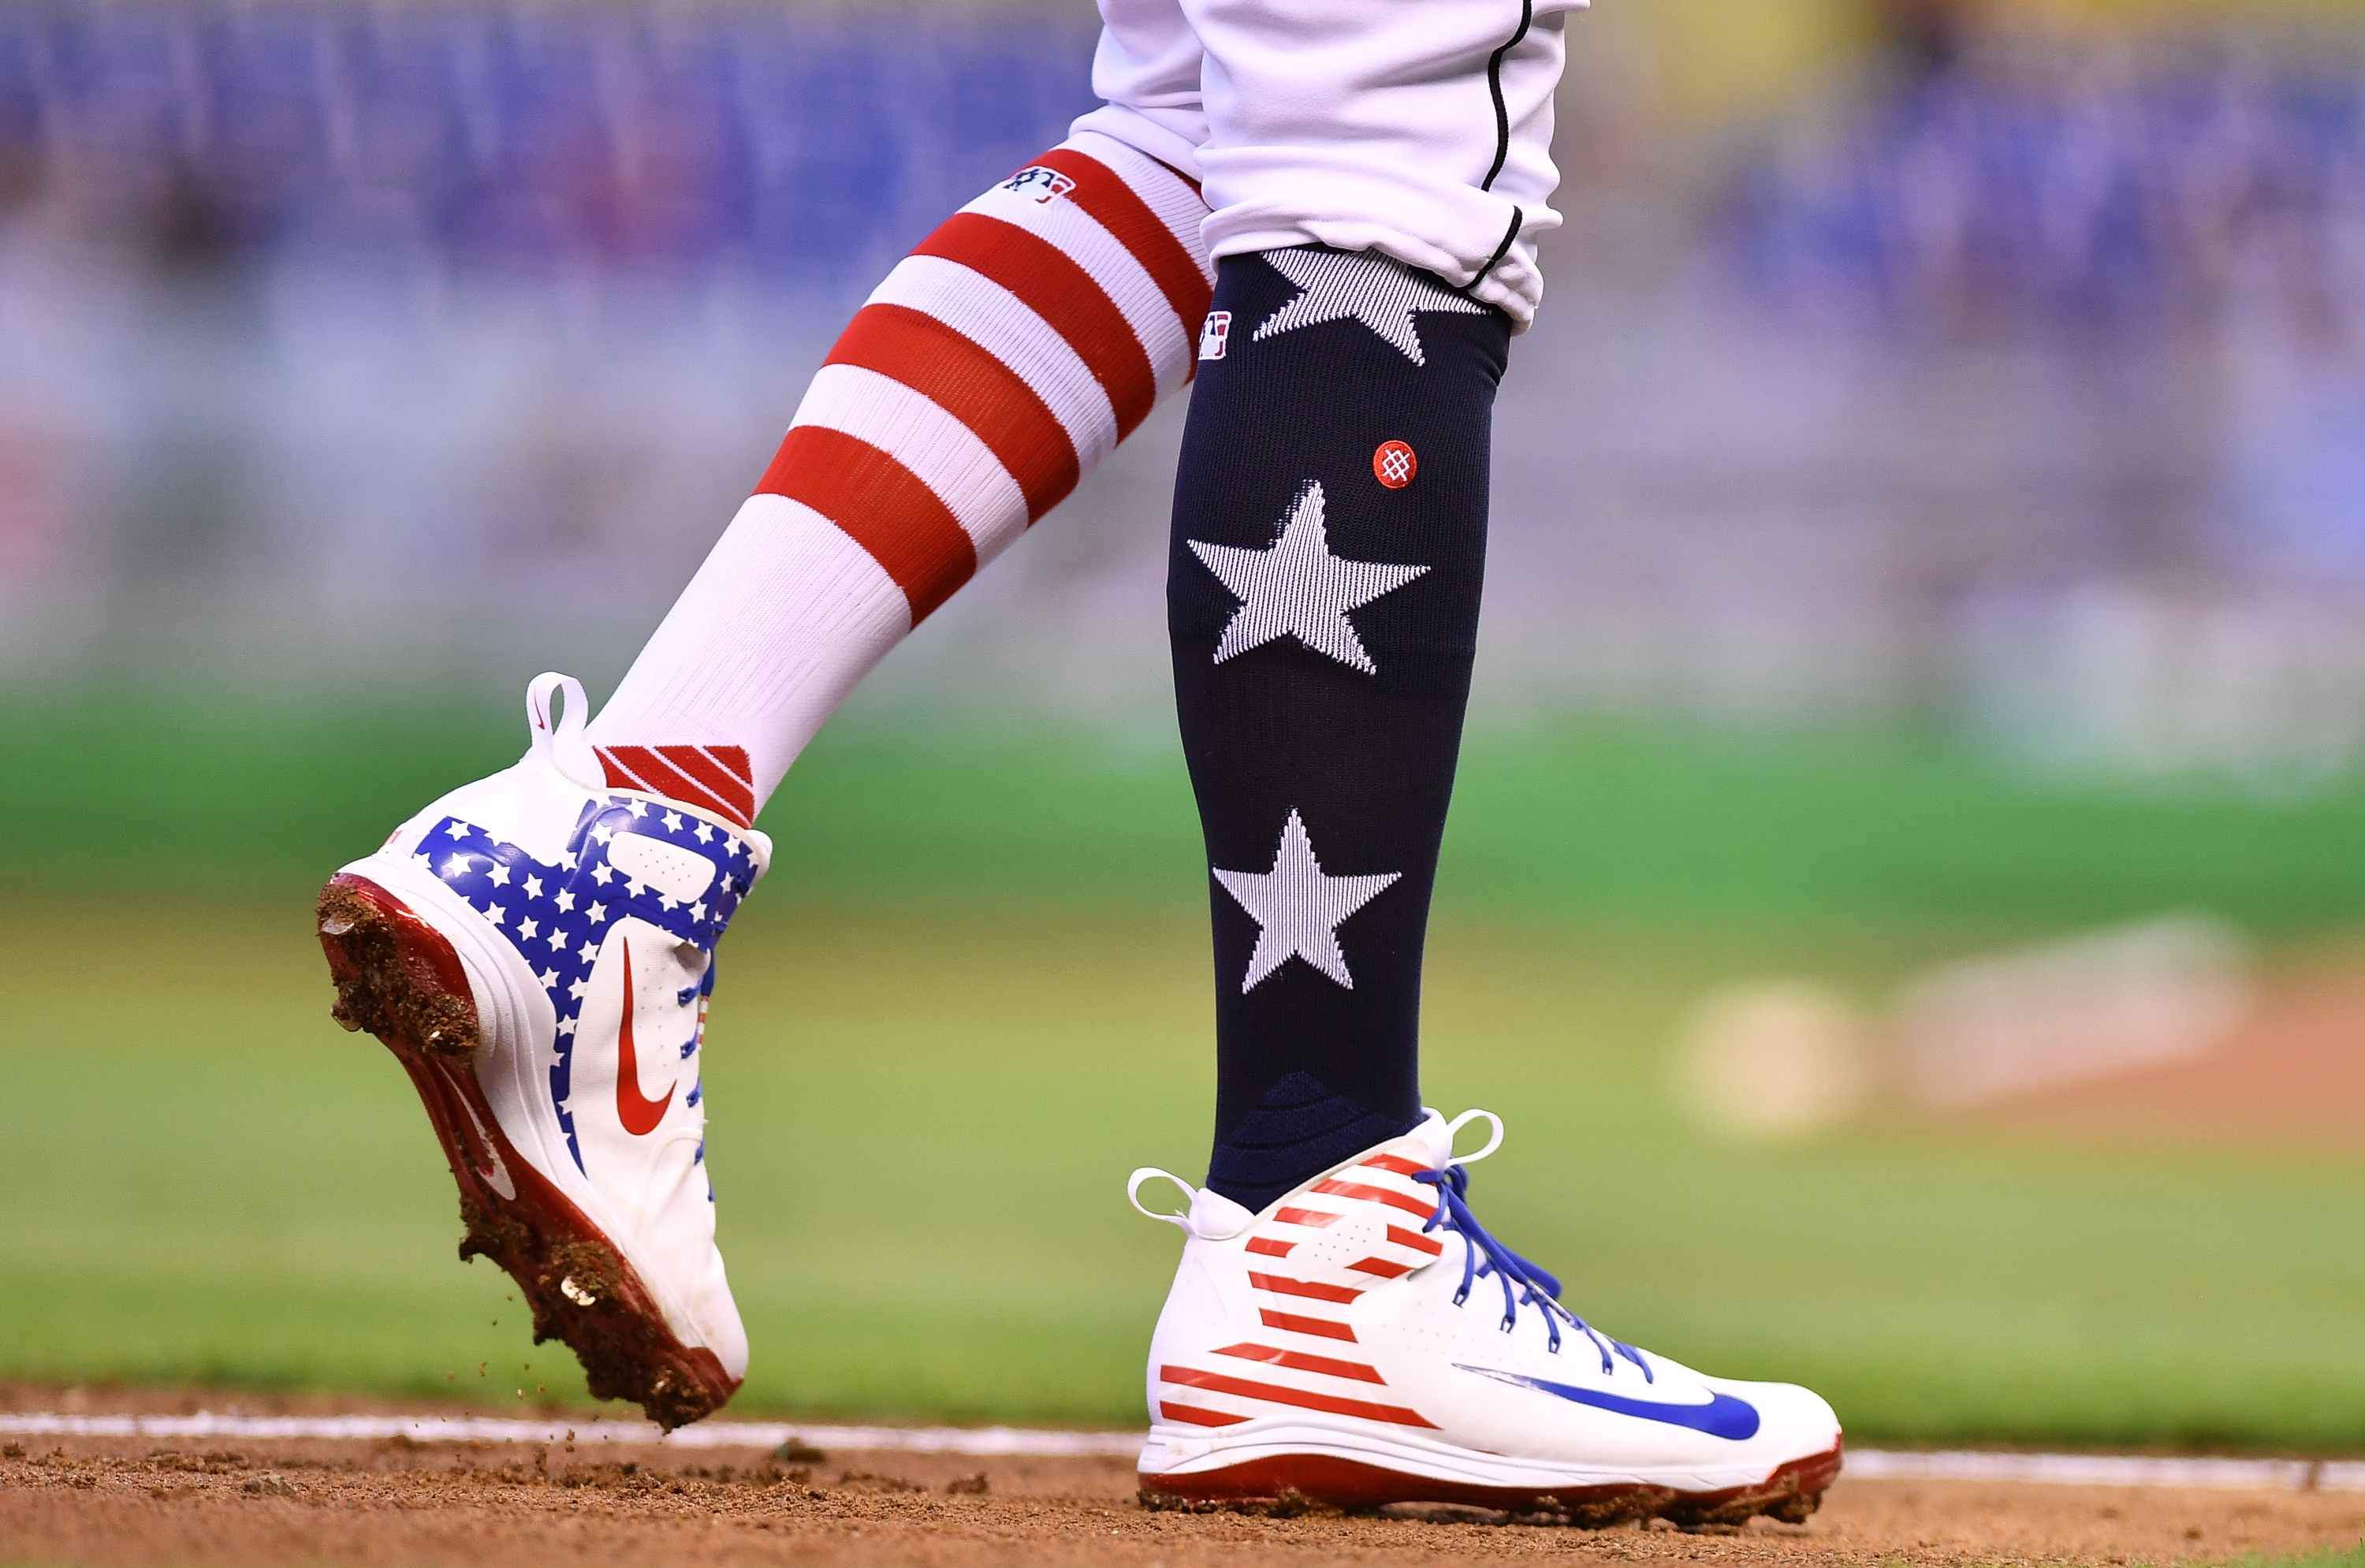 MIAMI, FL - JULY 02: A detailed view of the Stars and Stripes edition Nike cleats and Stance socks worn by Miguel Rojas #19 of the Miami Marlins during the game against the Tampa Bay Rays at Marlins Park on July 2, 2018 in Miami, Florida.